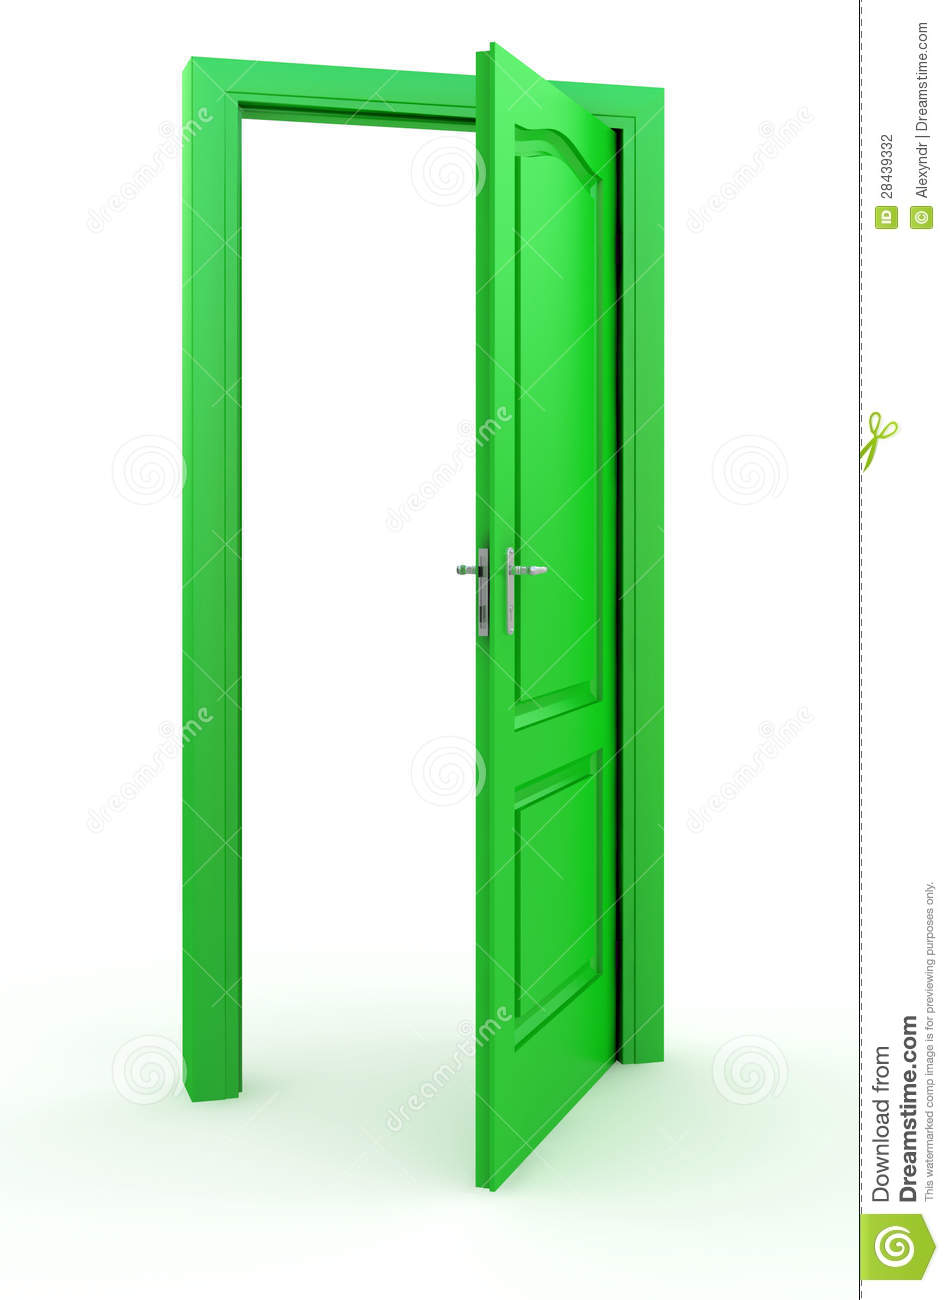 Clip Art Green Door.